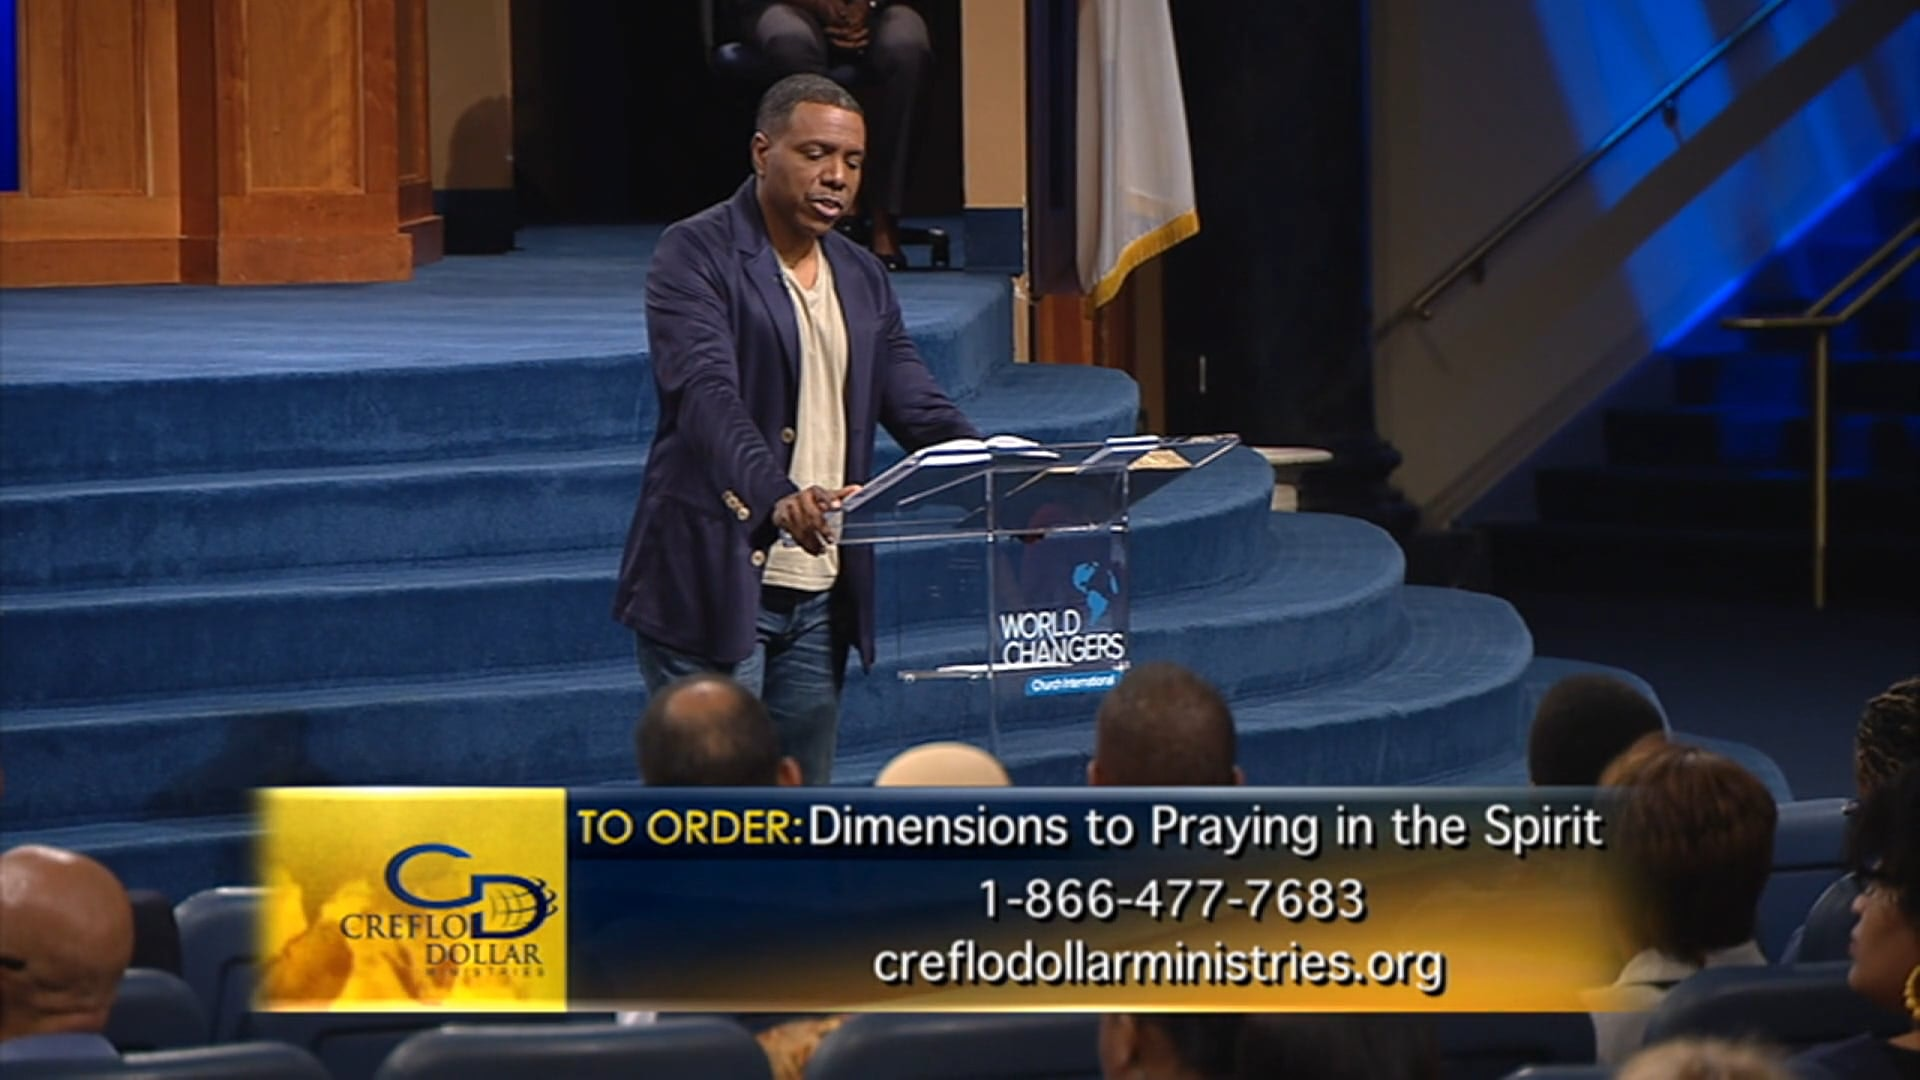 Watch Dimensions to Praying in the Spirit